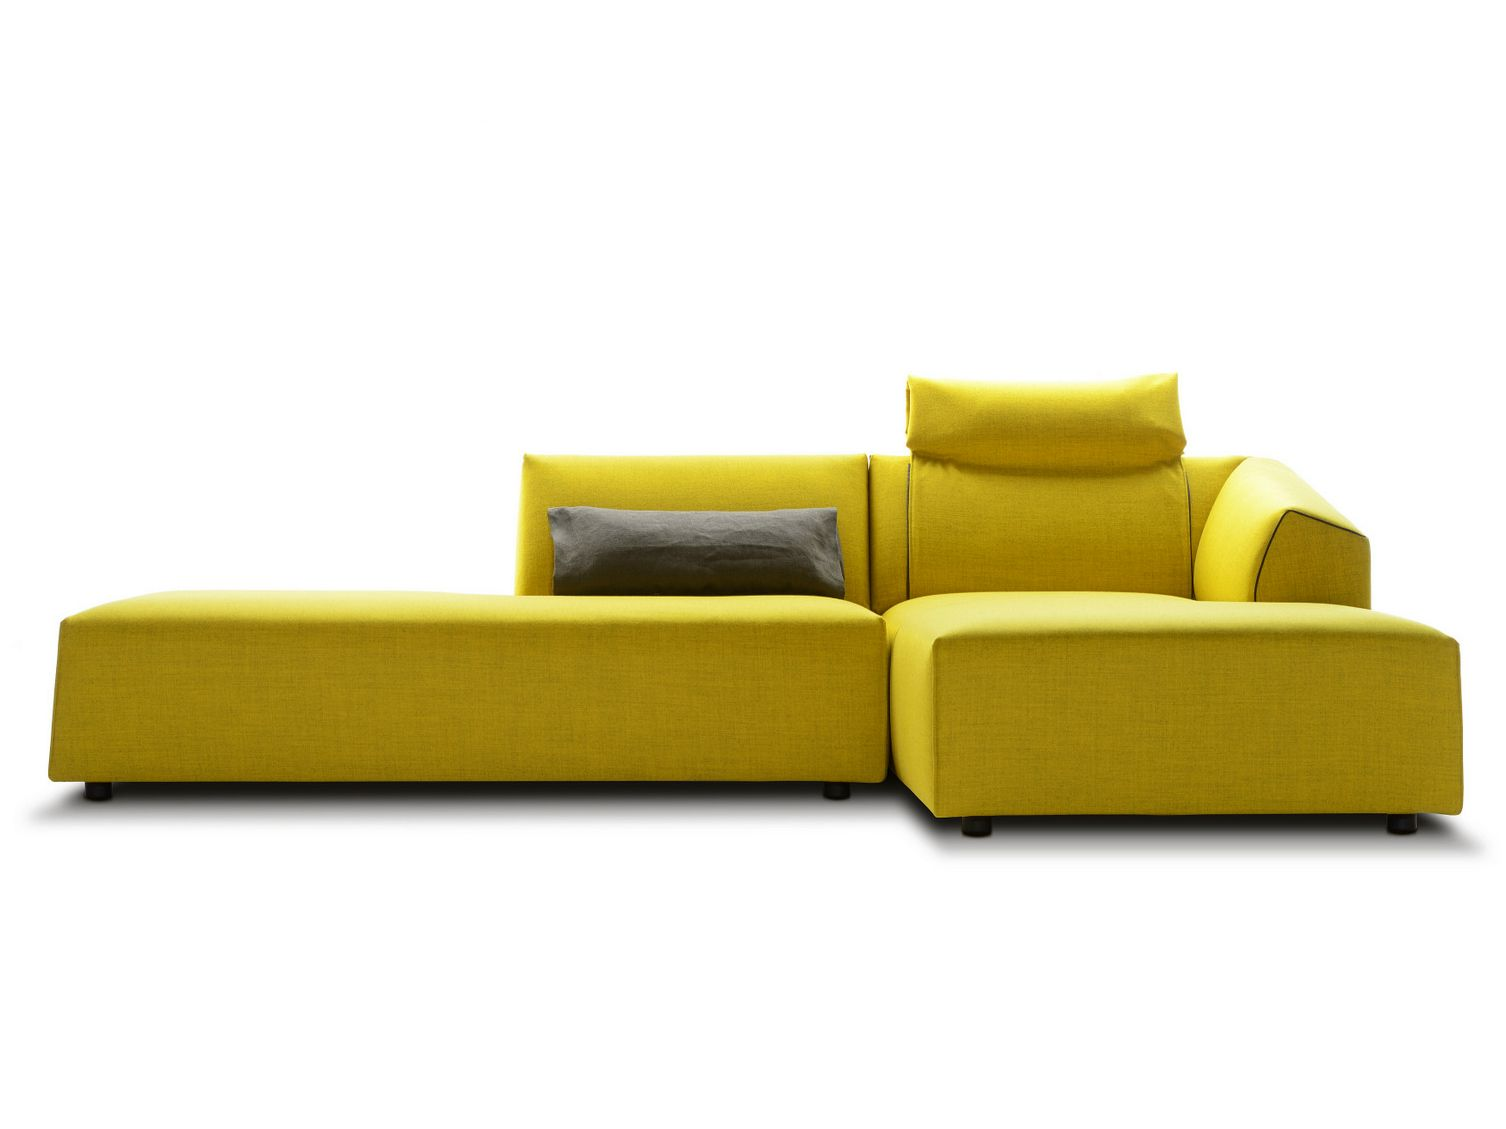 Ausgefallene Ecksofas Sectional Fabric Sofa Thea By Mdf Italia Design Lina